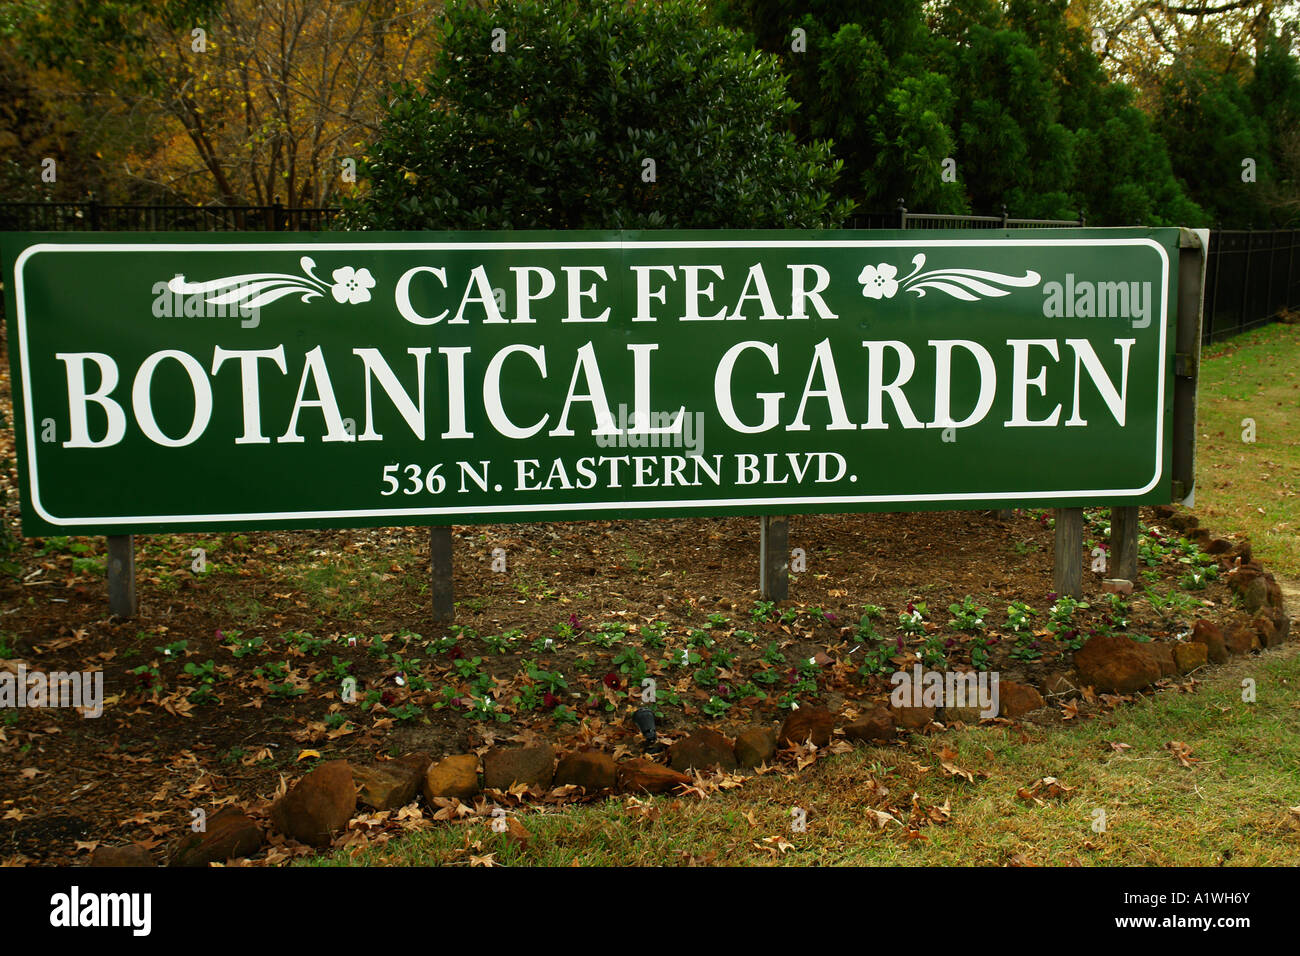 AJD54622, Fayetteville, NC, North Carolina, Cape Fear Botanical Gardens,  Entrance Sign